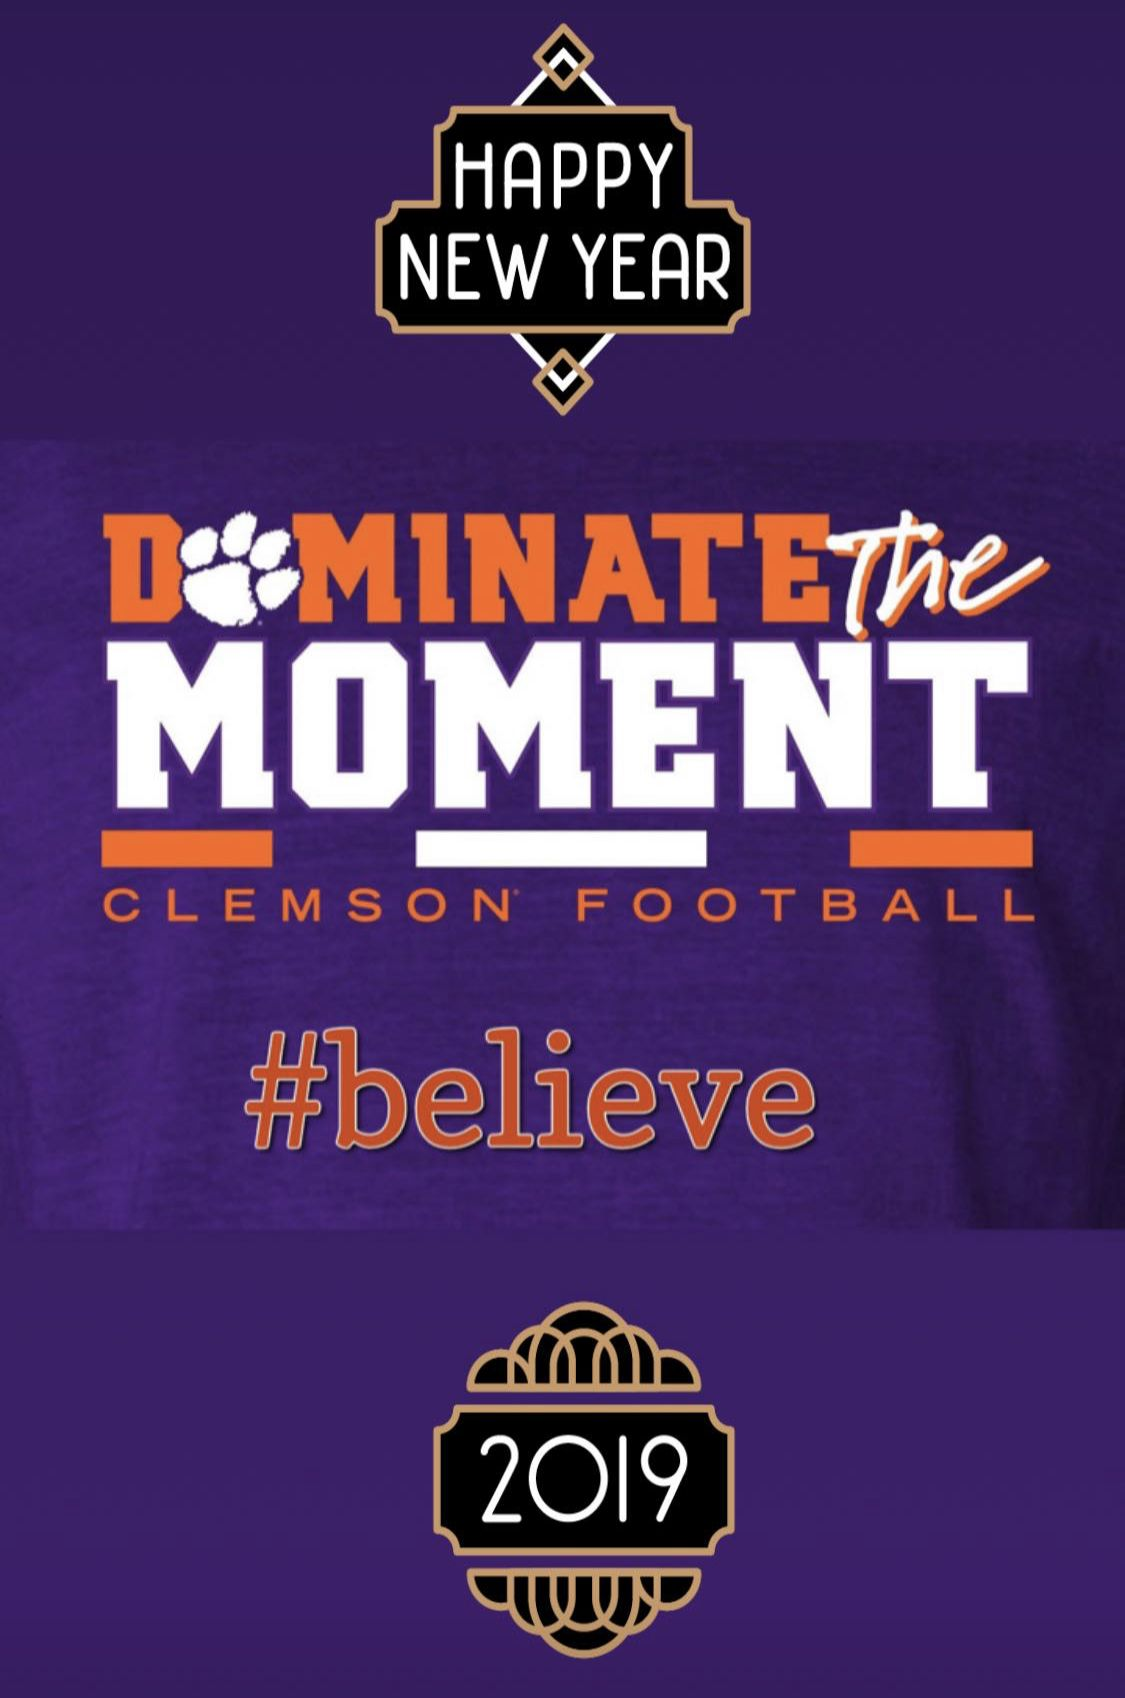 Dominate the Moment Happy New Year 2019 Clemson fans